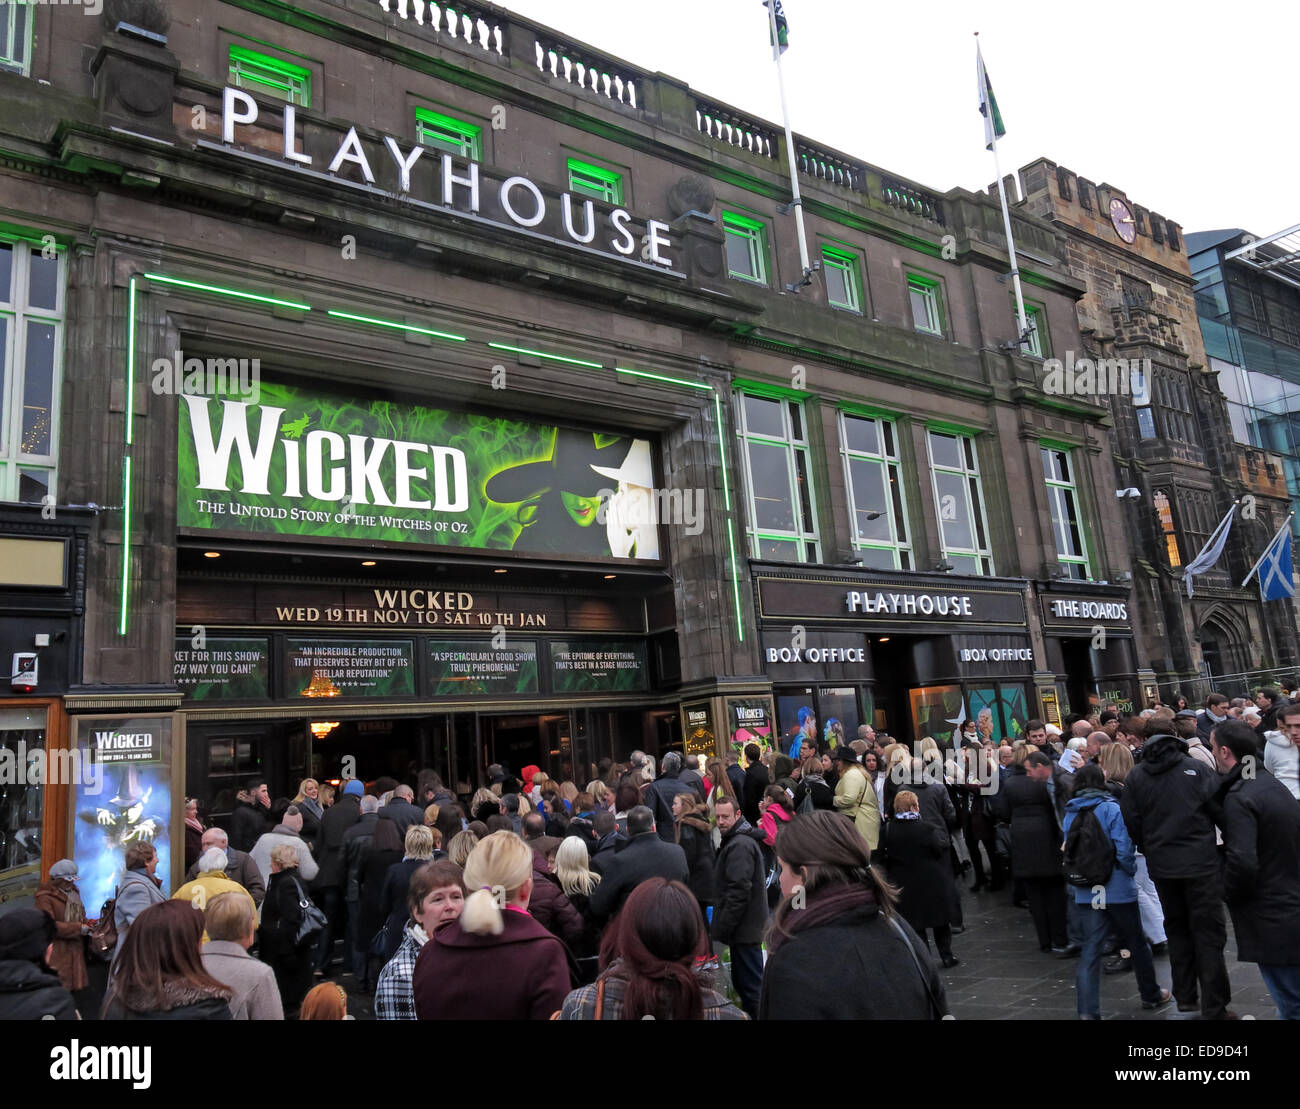 Scenes outside The Edinburgh Playhouse Theatre for the production of Wicked, Scotland, UK - Stock Image